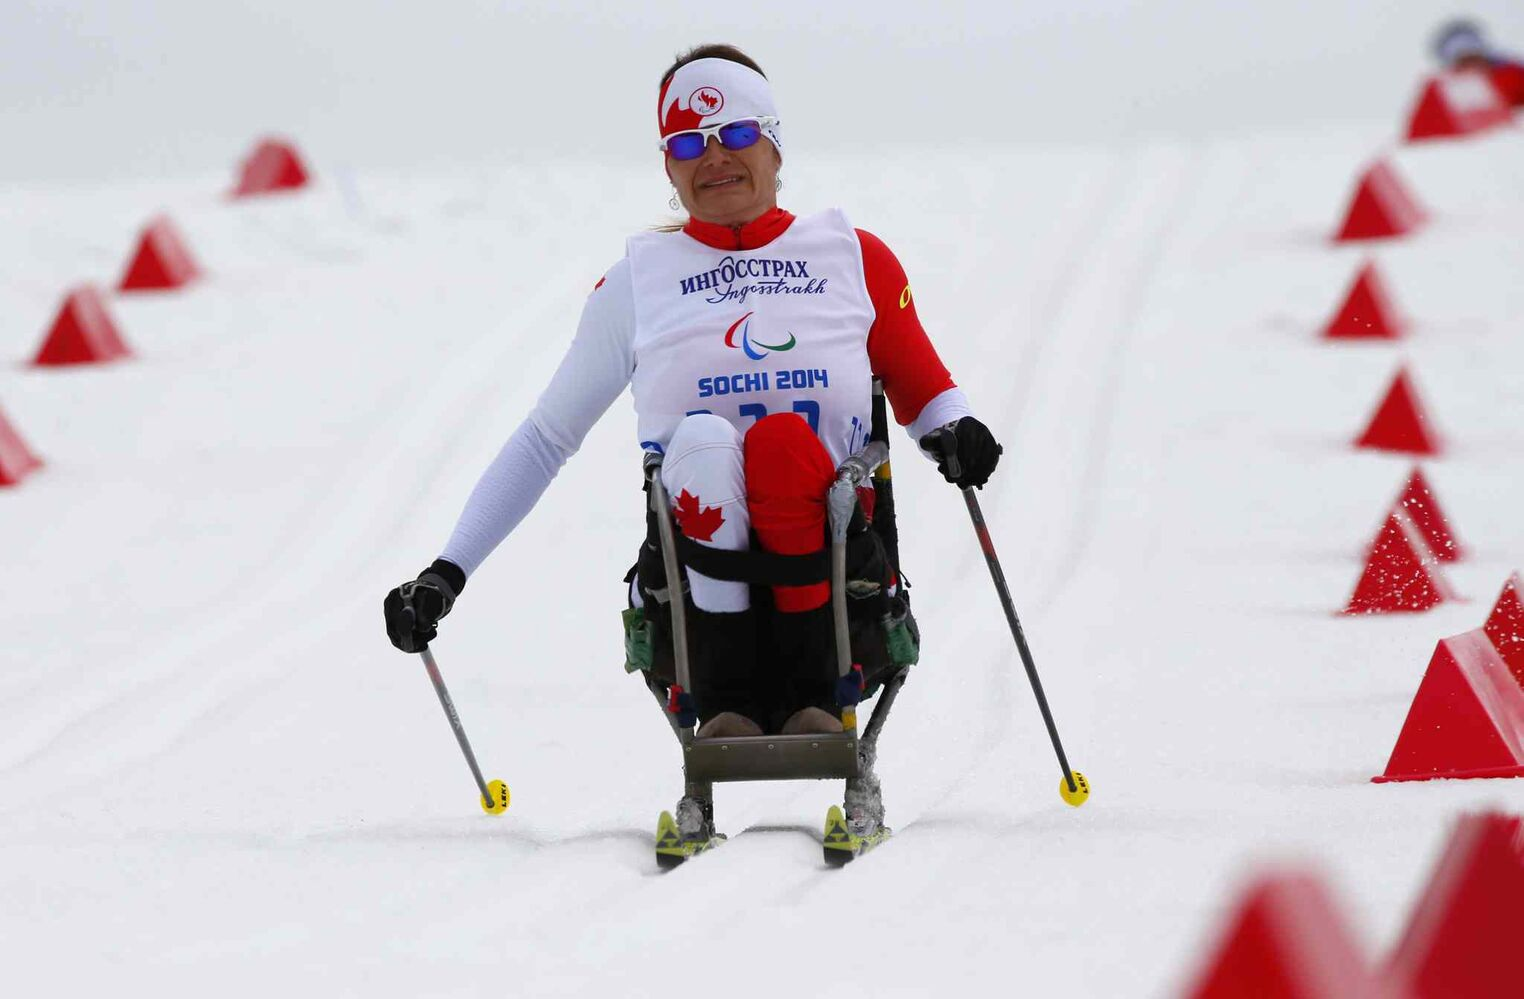 Colette Bourgonje of Canada races during the ladies 12km cross country ski, sitting event Sunday, March 9, 2014, in Krasnaya Polyana, Russia. (Dmitry Lovetsky / The Associated Press)